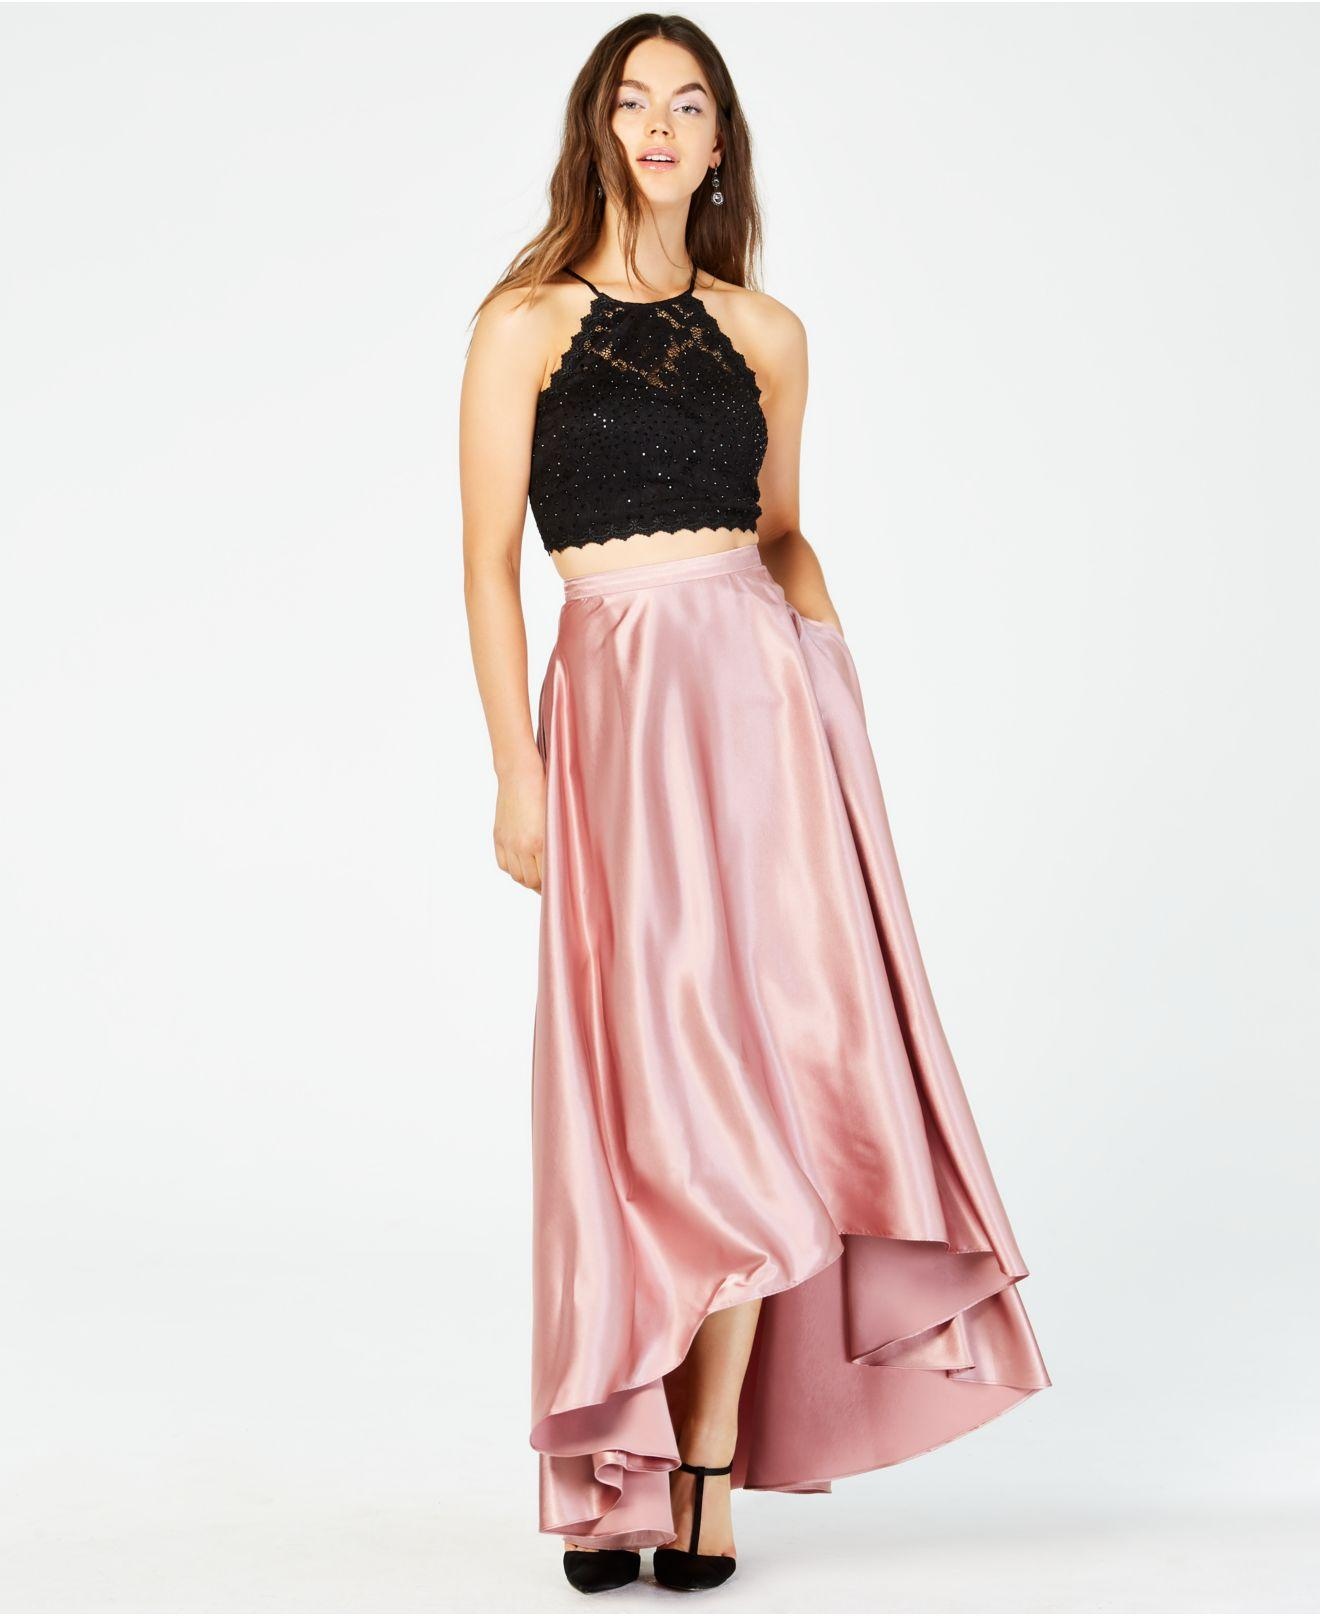 bf2adf5db369 Sequin Hearts Juniors' 2-pc. Lace Top & High-low Skirt in Pink - Lyst